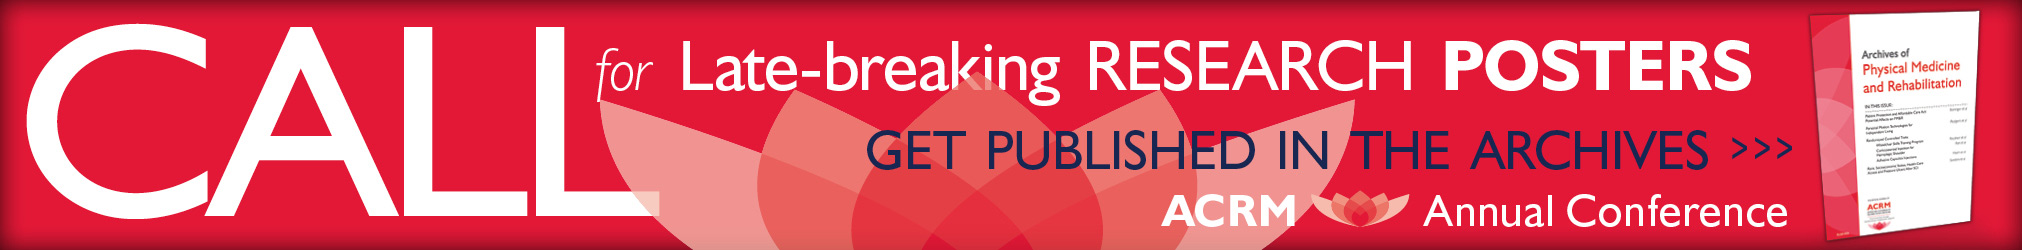 ACRM Call for Late-Breaking Research Poster Proposals